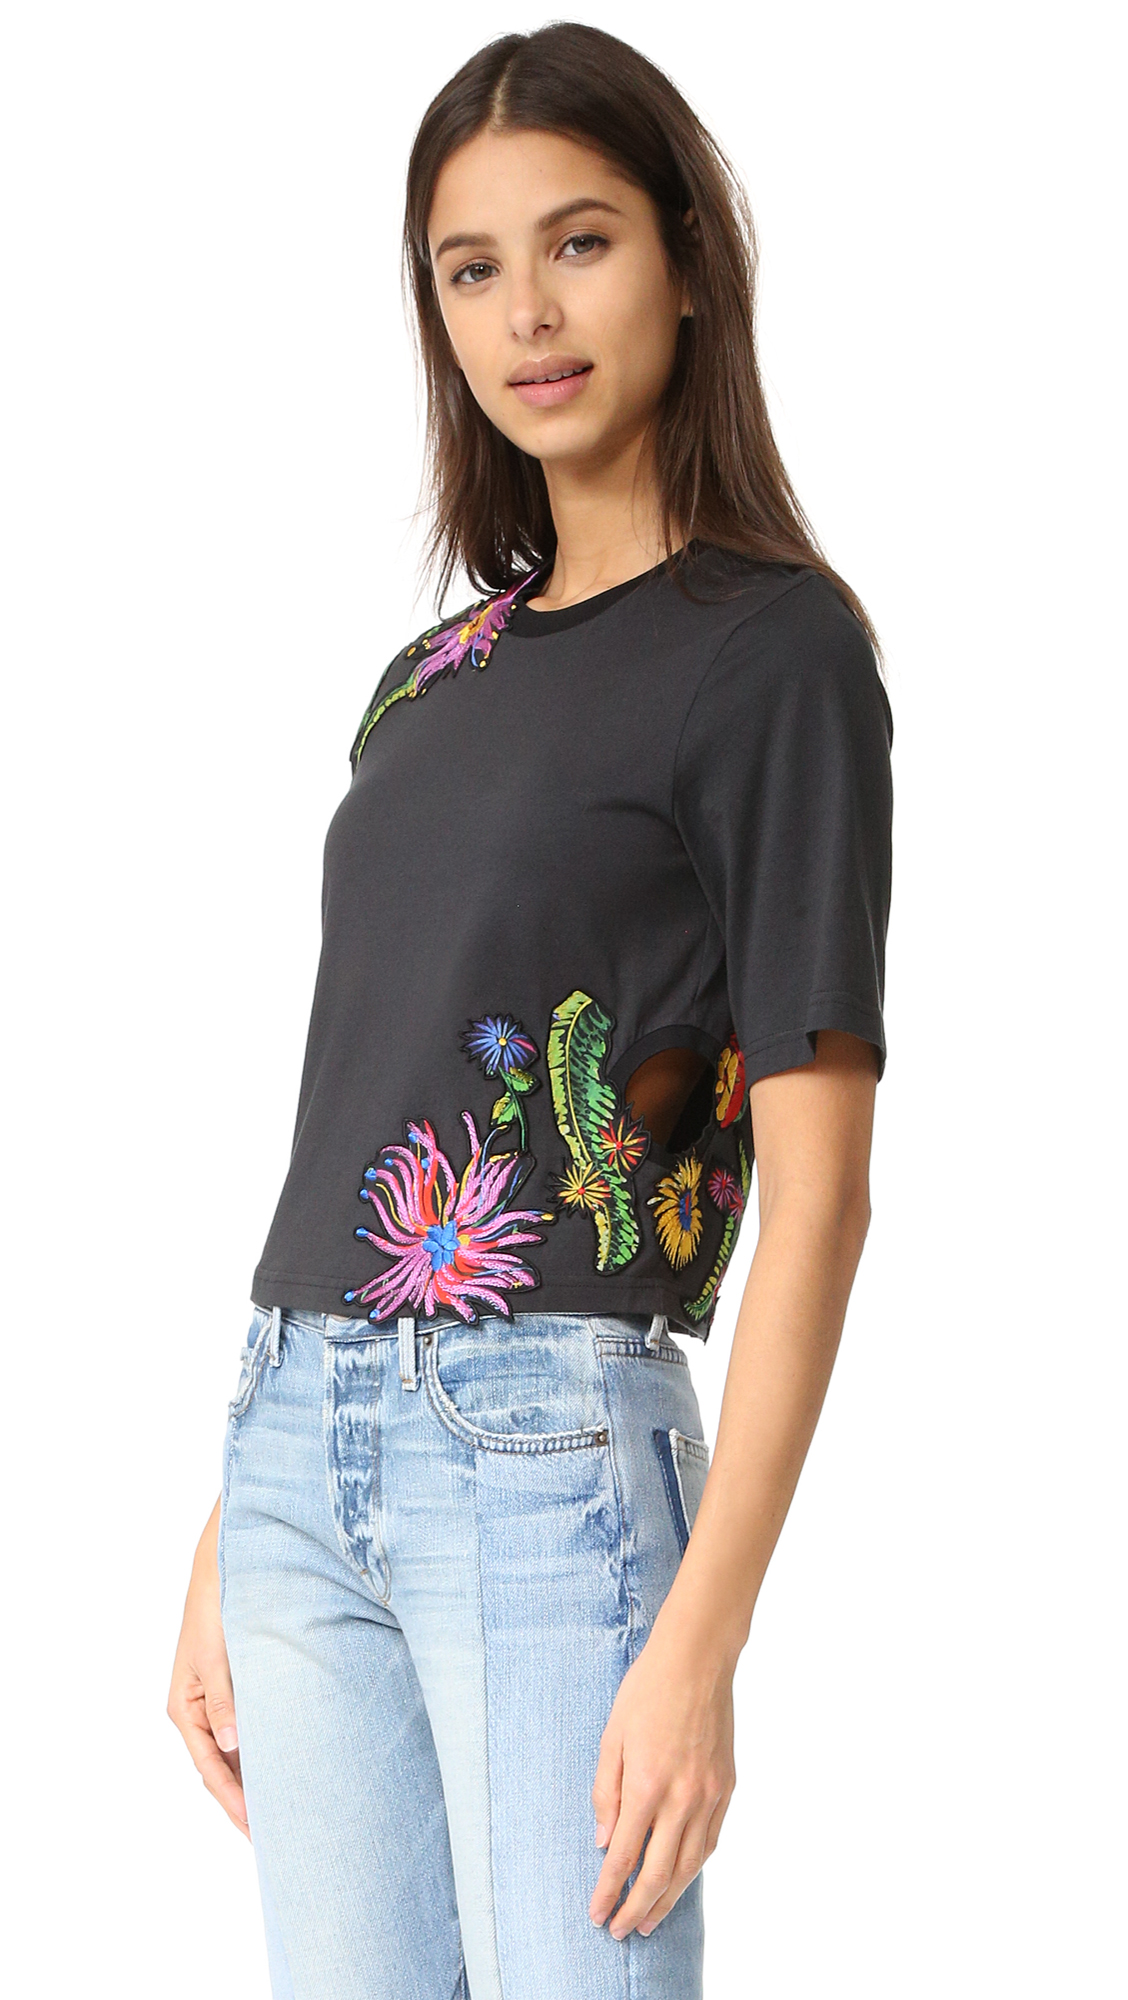 3.1 Phillip Lim Floral Embroidered Tee - Soft Black at Shopbop